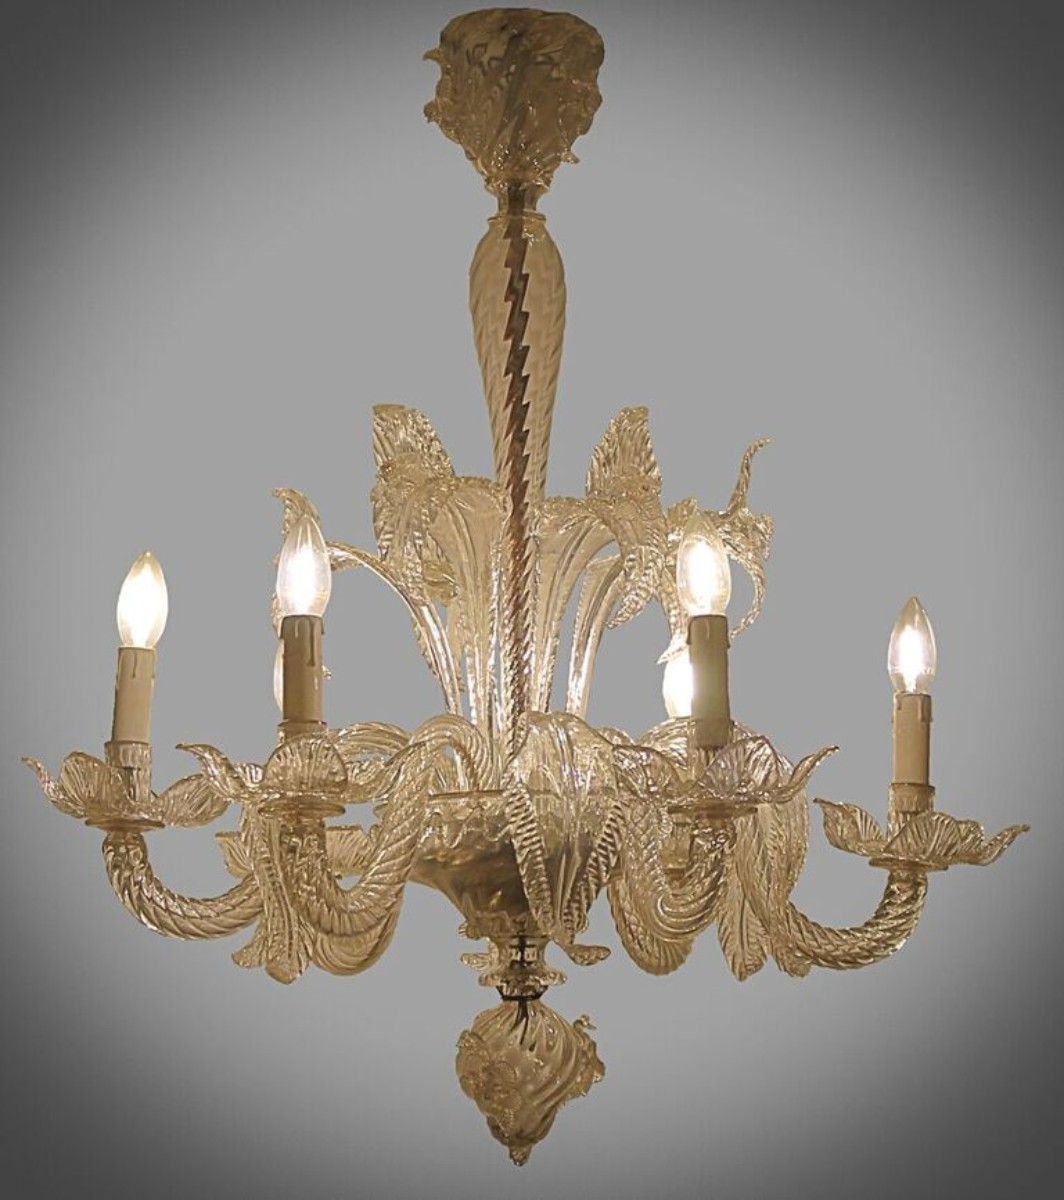 Small 1940s murano glass chandelier chandeliers lighting small 1940s murano glass chandelier chandeliers lighting galerie des minimes aloadofball Gallery